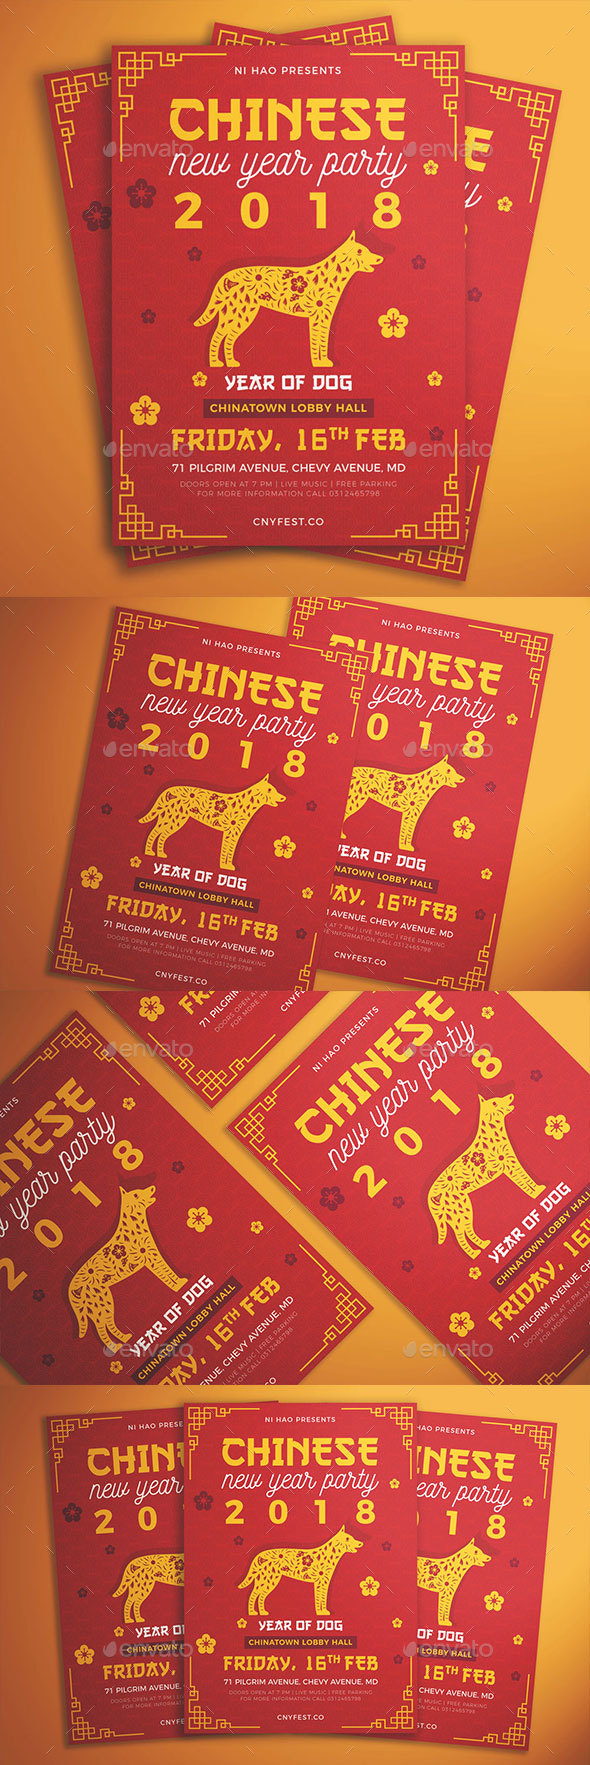 Chinese New Year Party Flyer - Flyers Print Templates